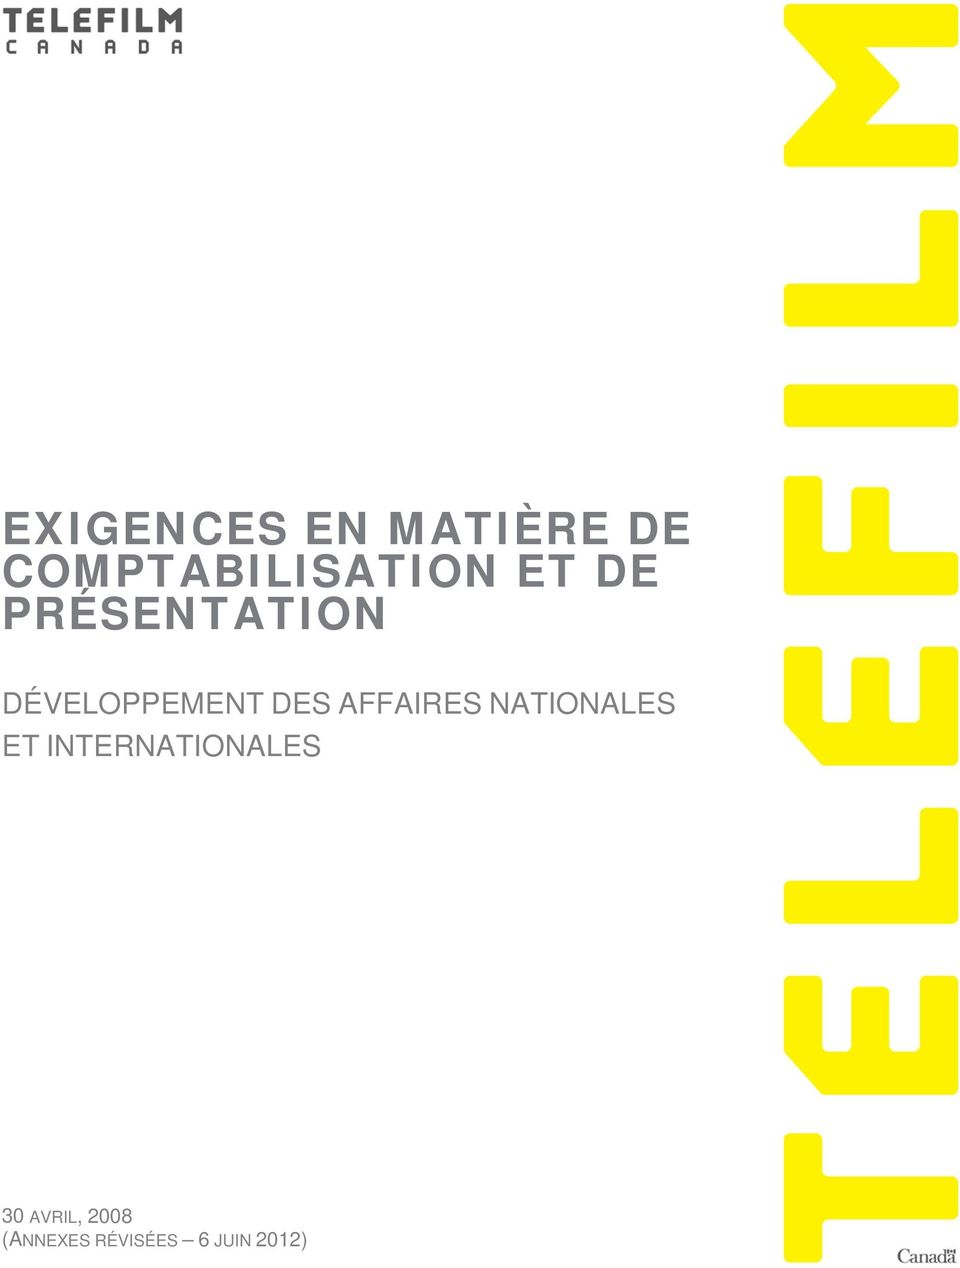 AFFAIRES NATIONALES ET INTERNATIONALES